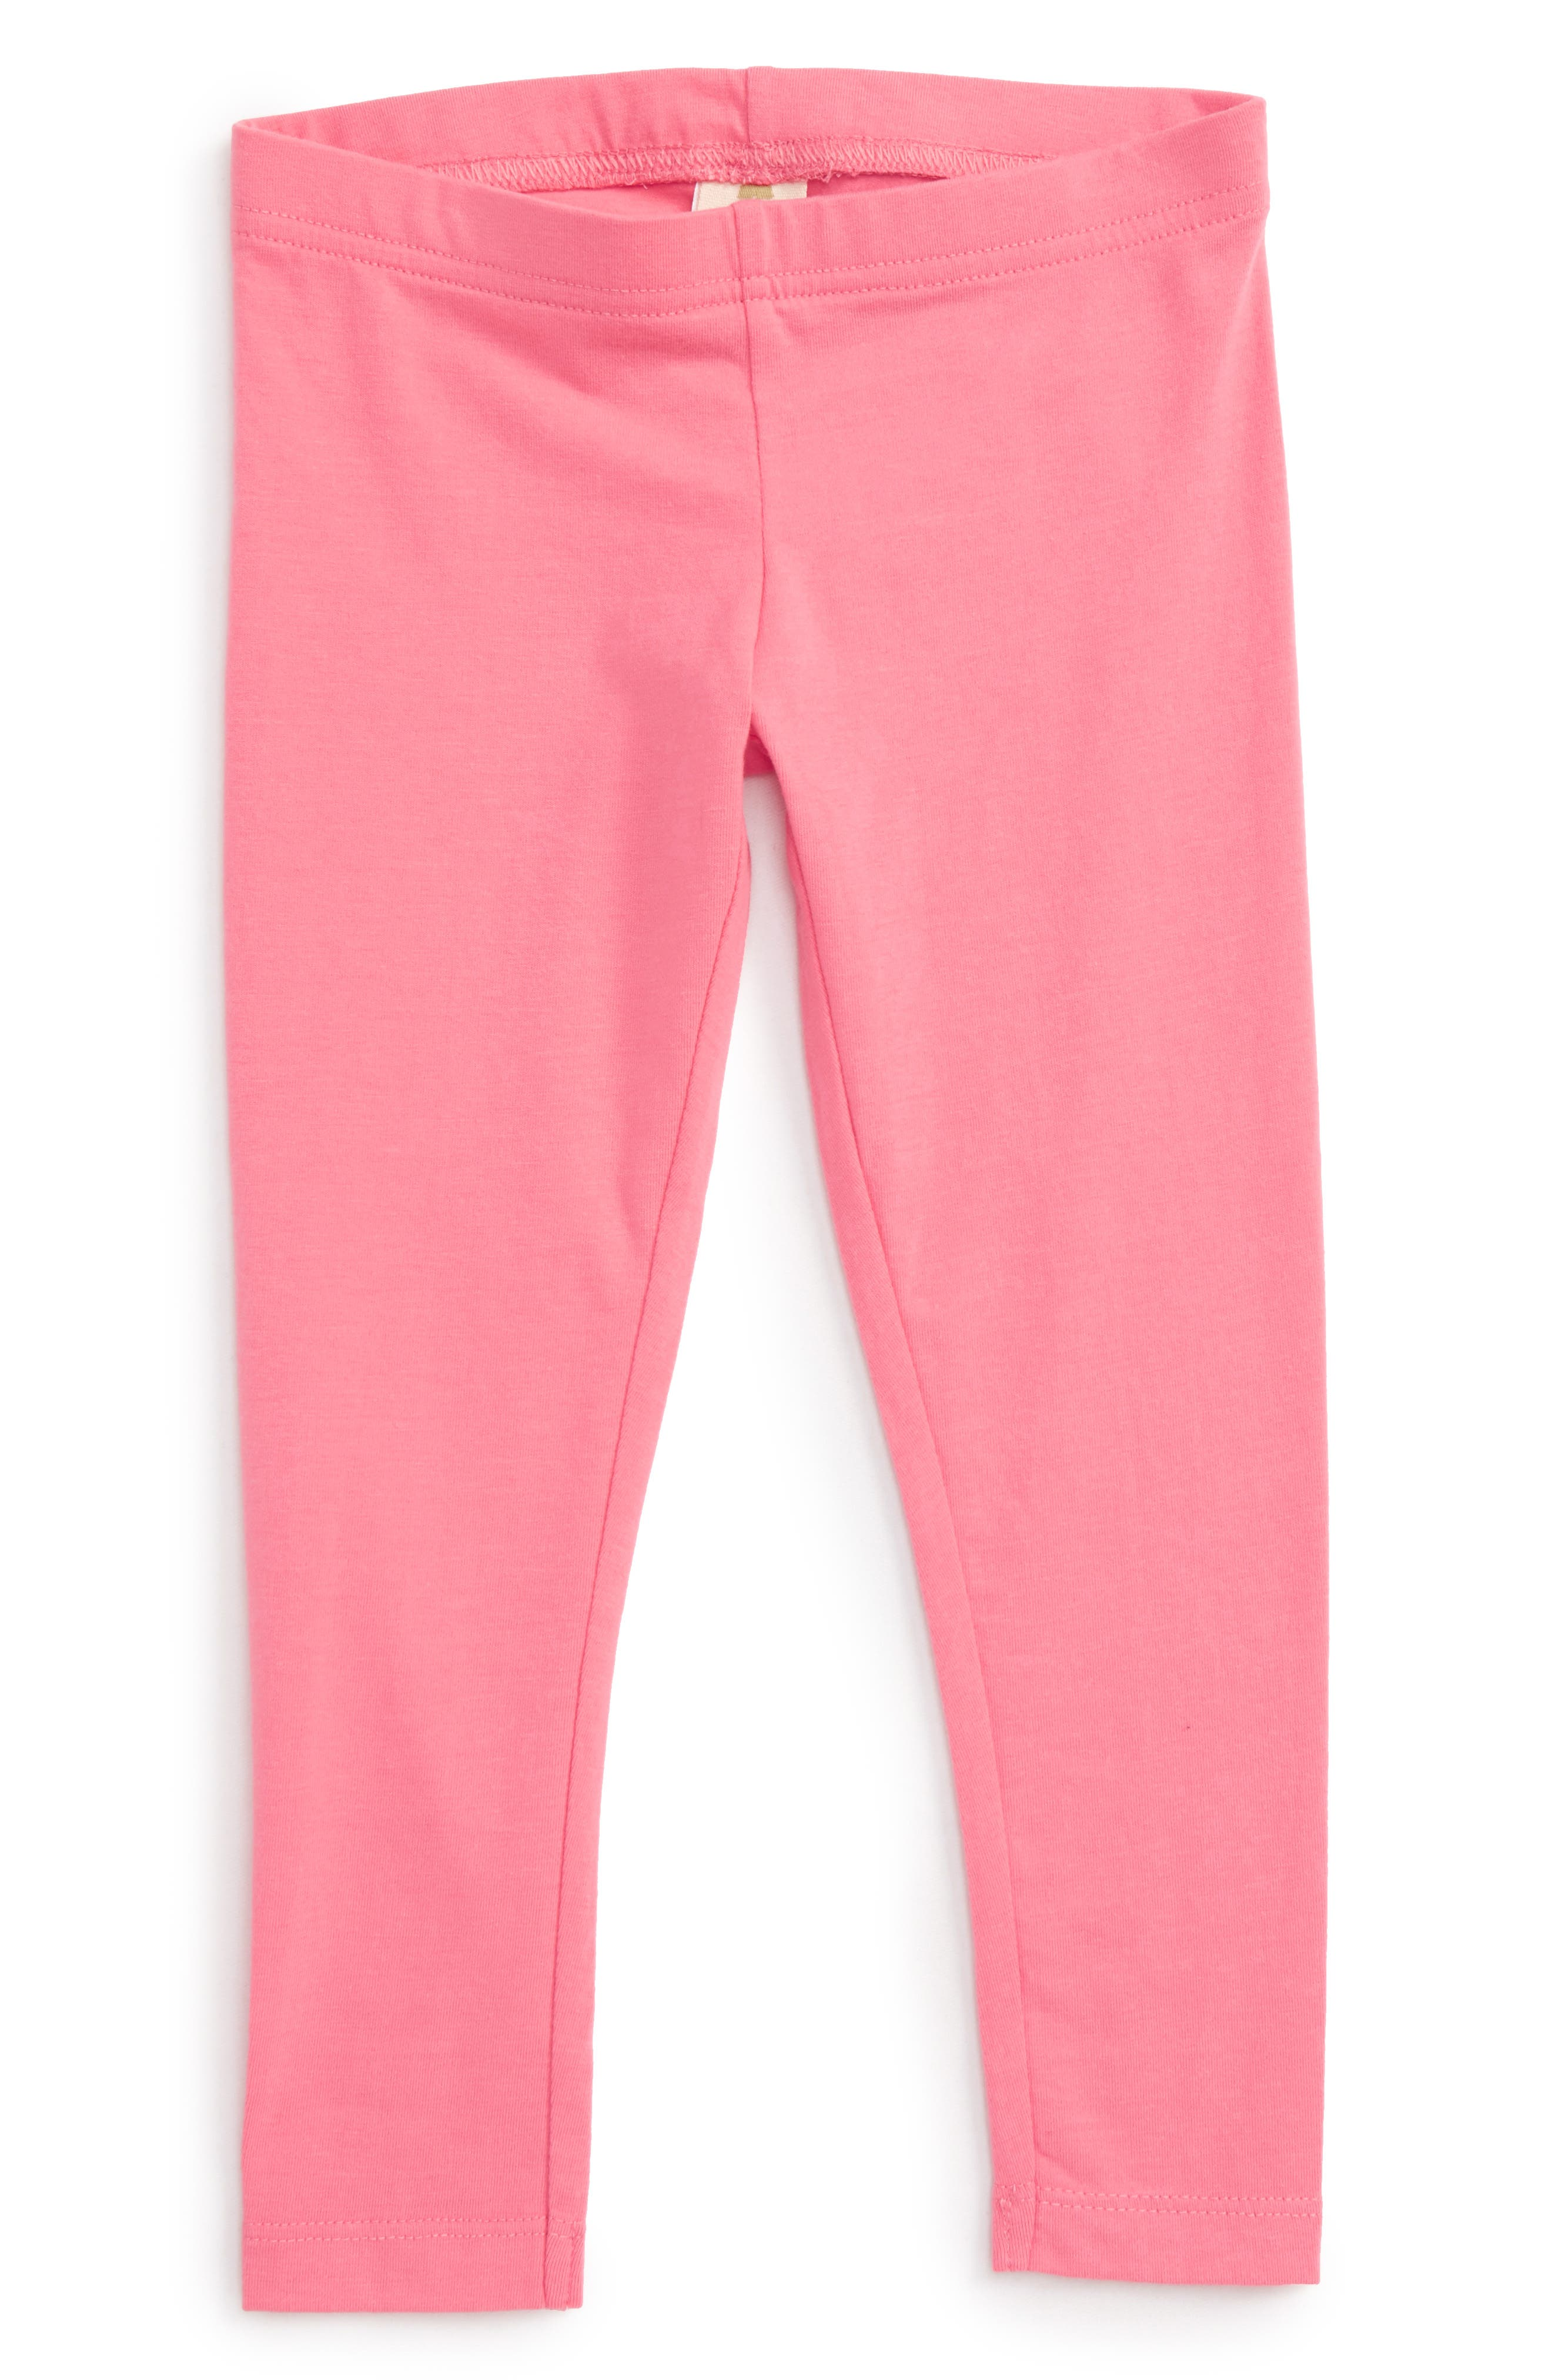 'Core' Leggings,                             Main thumbnail 1, color,                             Pink Lemonade